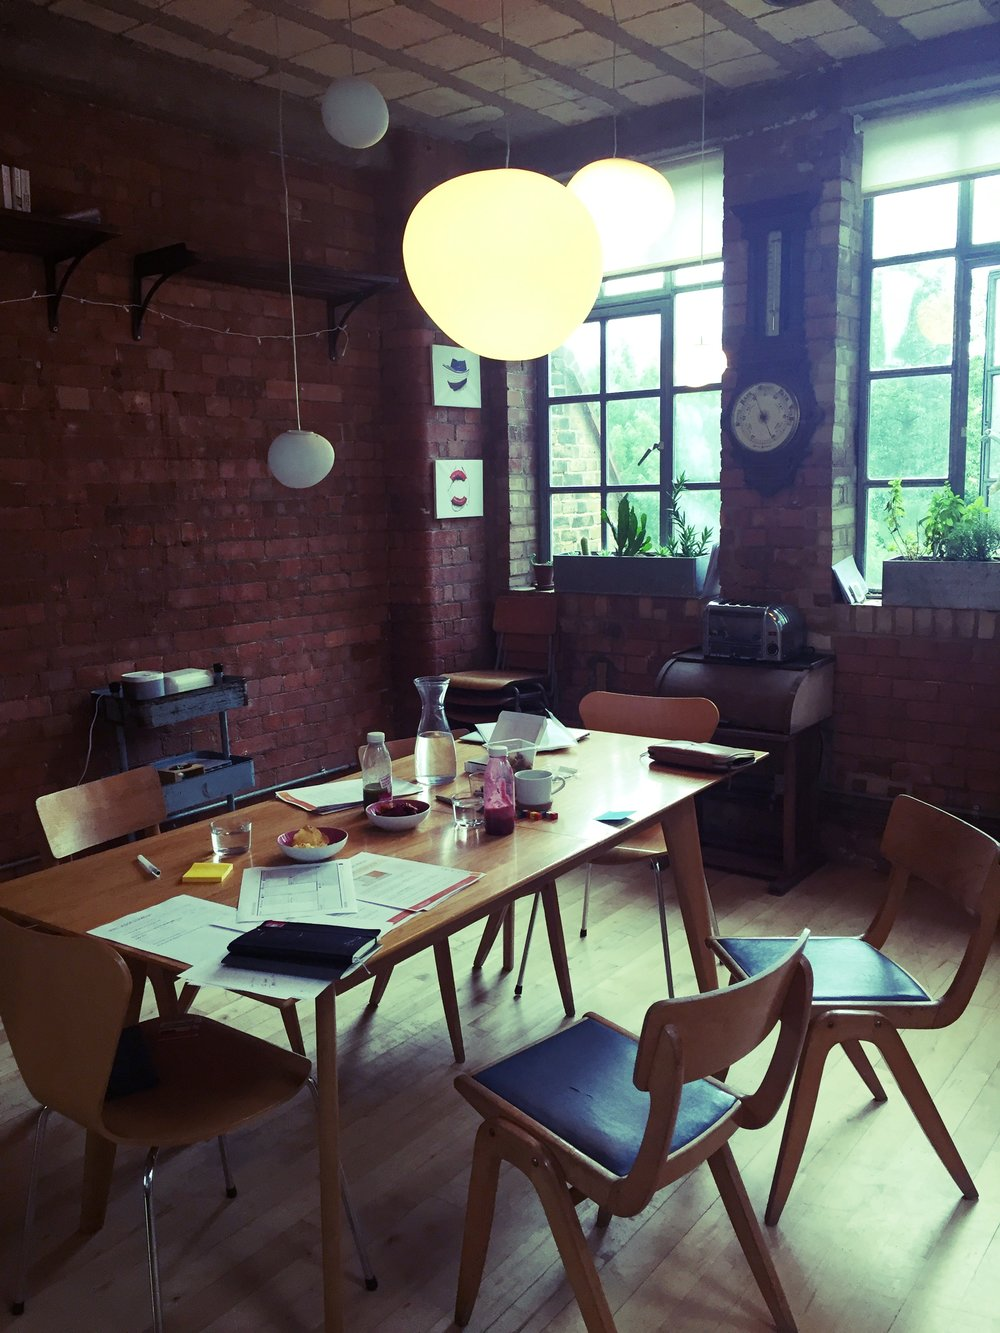 1-Day Intensive - A snapshot of our work station during the 1-Day Career Clarity session in London.